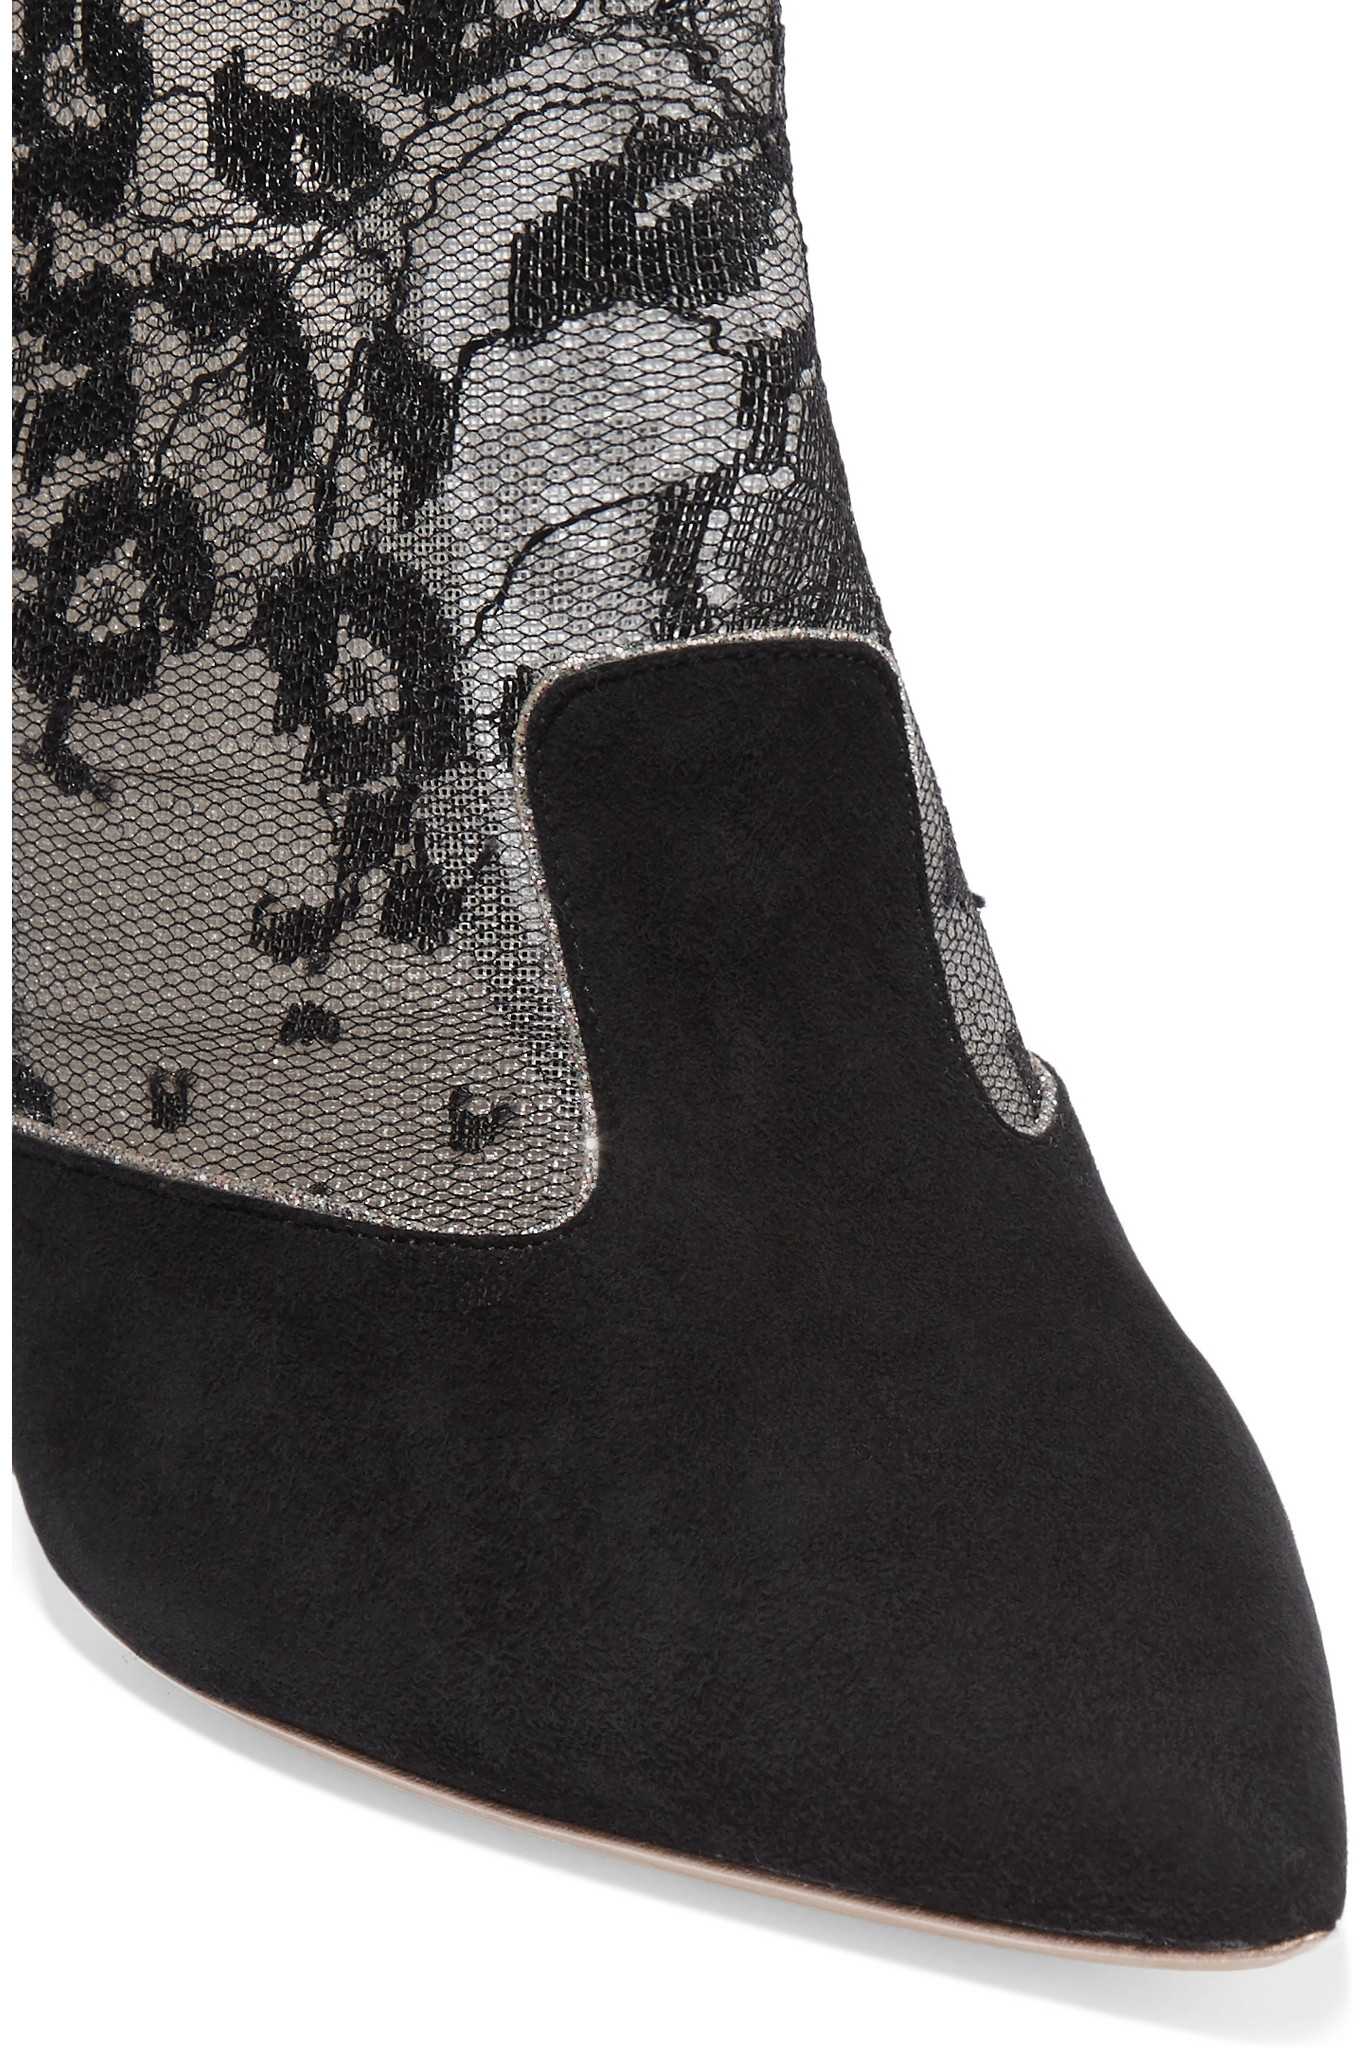 Nicholas Kirkwood Angie Suede And Lace Boots in Black